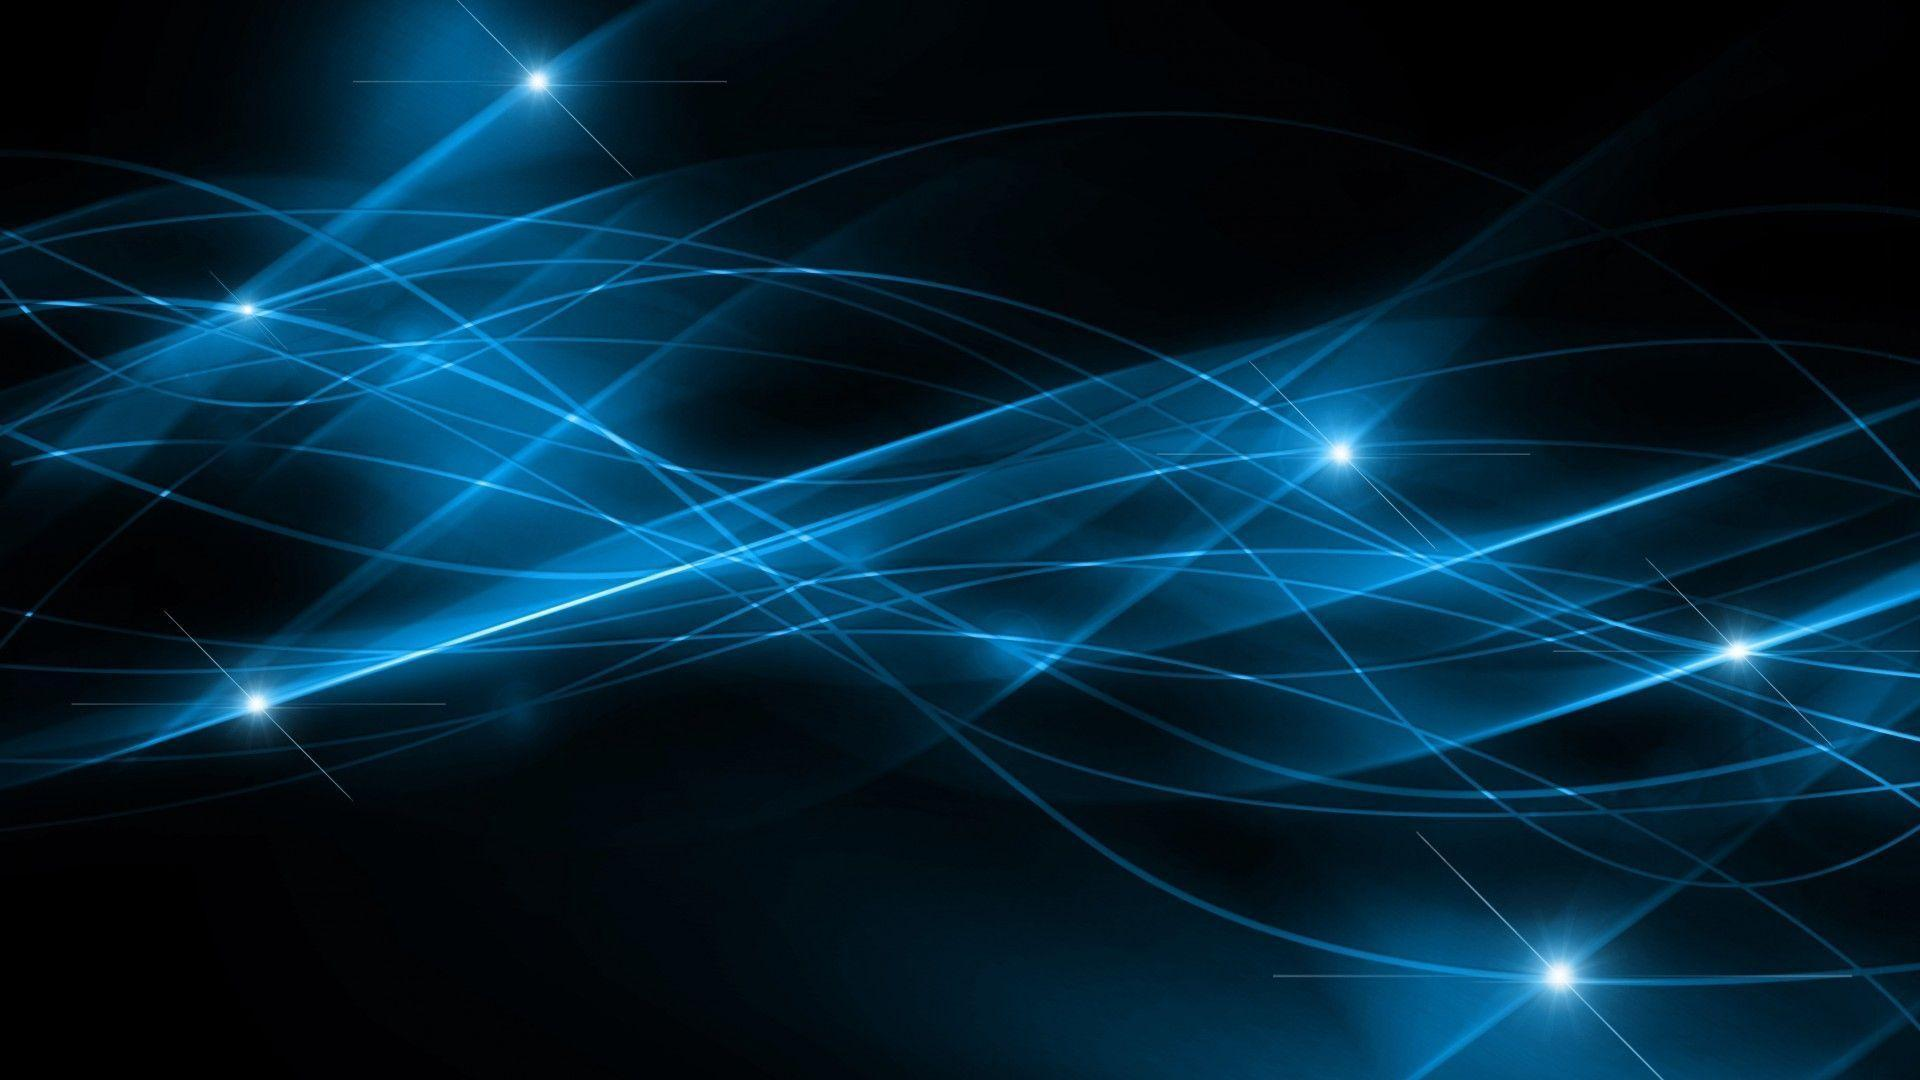 Download Black And Blue Abstract Backgrounds Background 1 HD .